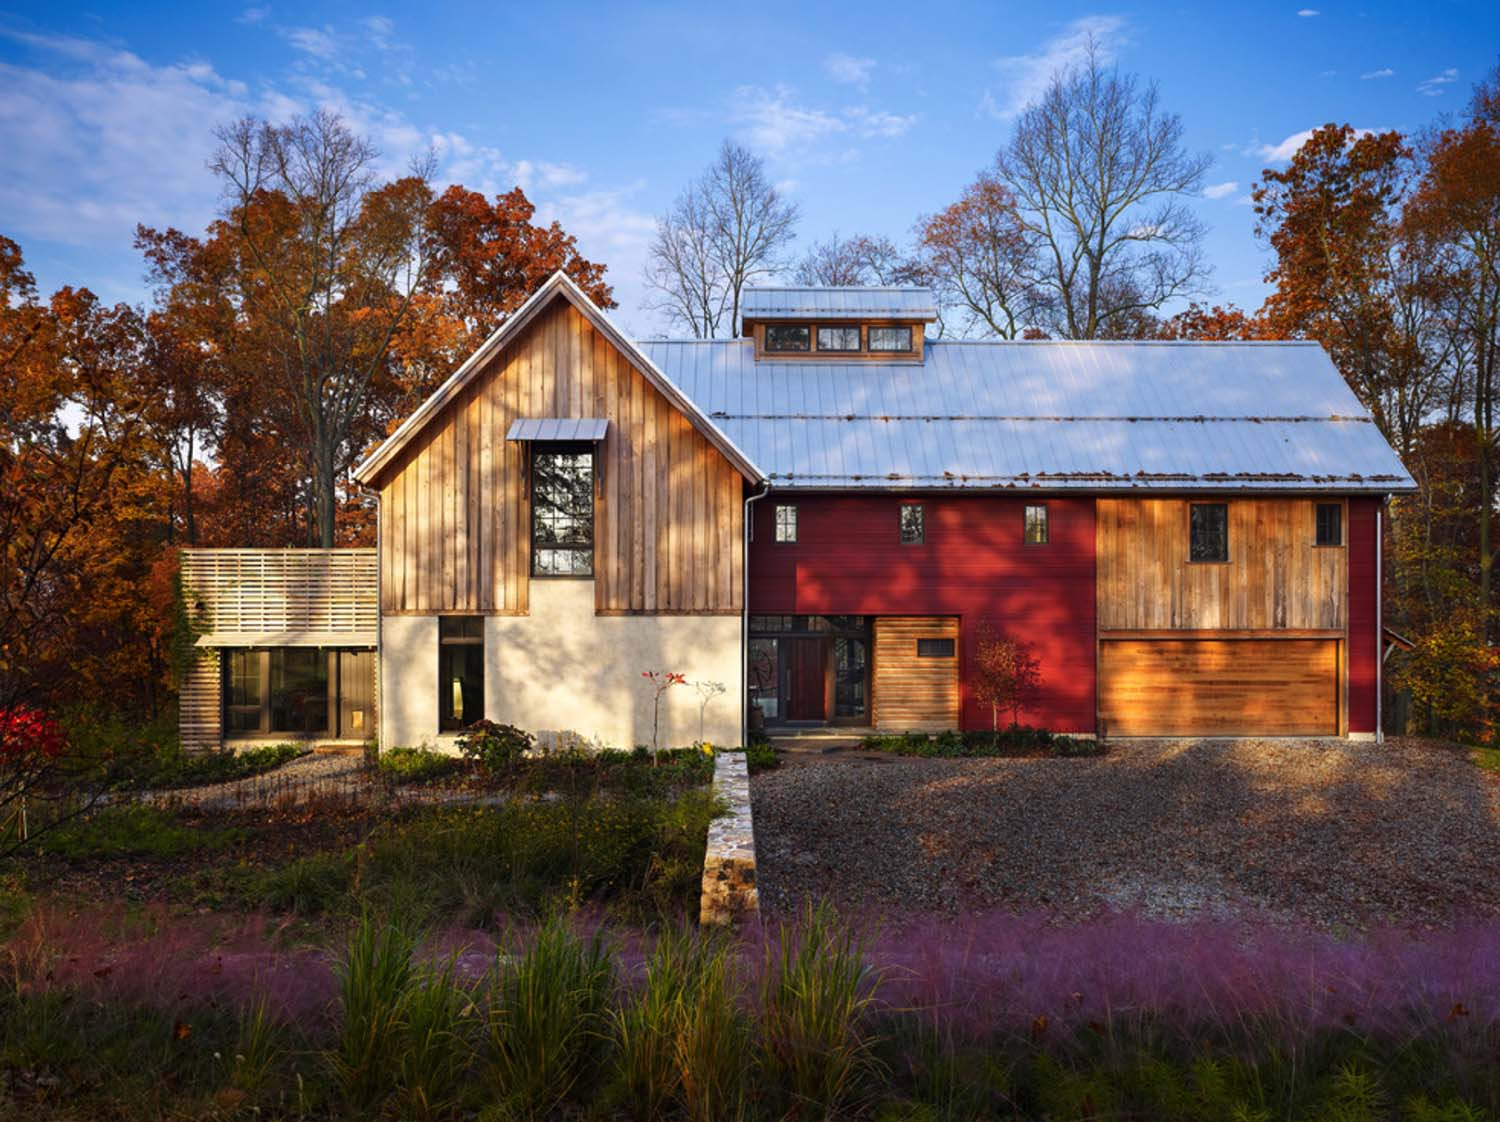 Sustainable modern rustic barn house in pennsylvania for Modern rustic farmhouse plans